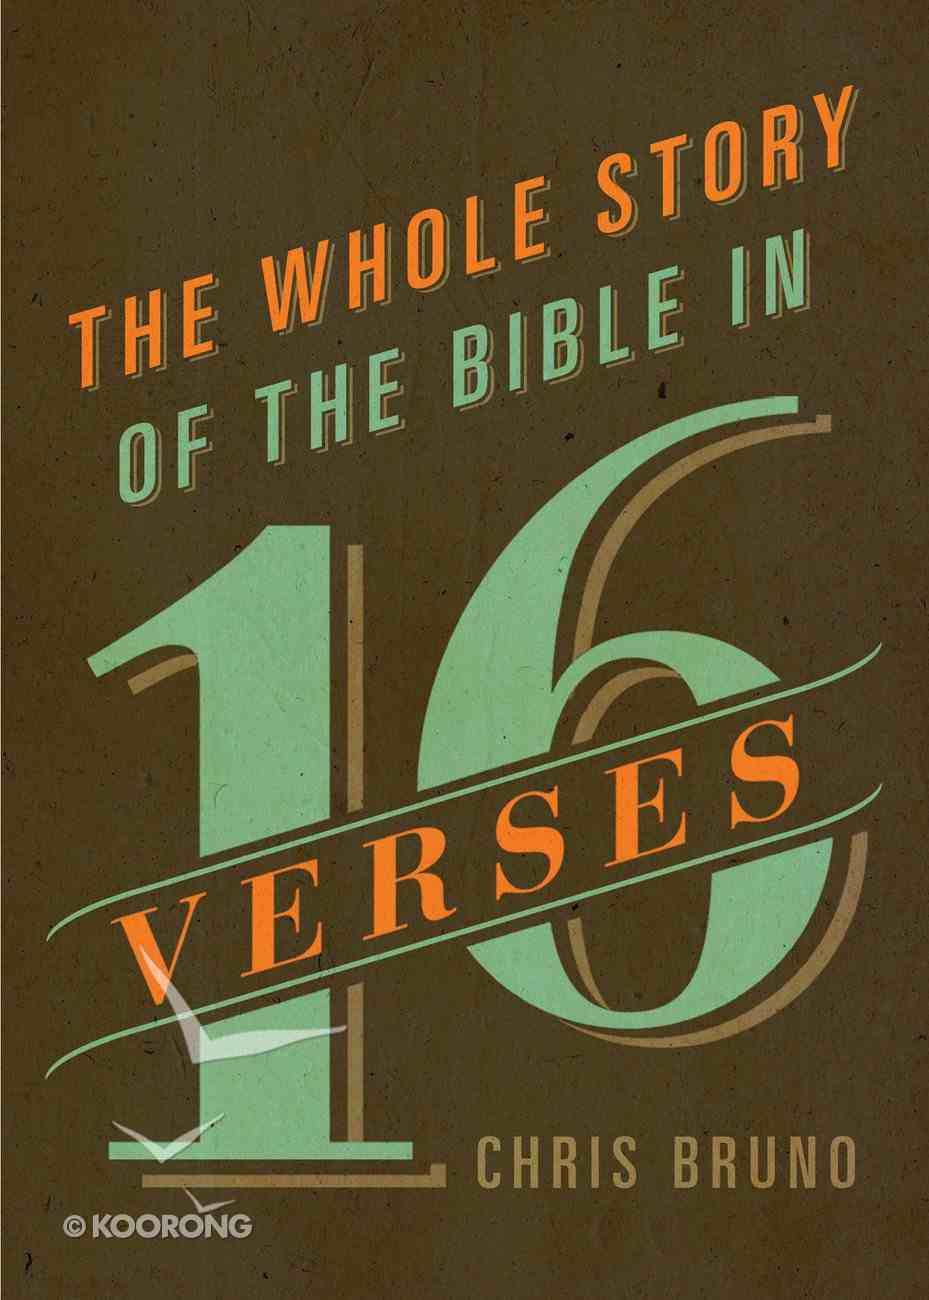 The Whole Story of the Bible in 16 Verses eBook